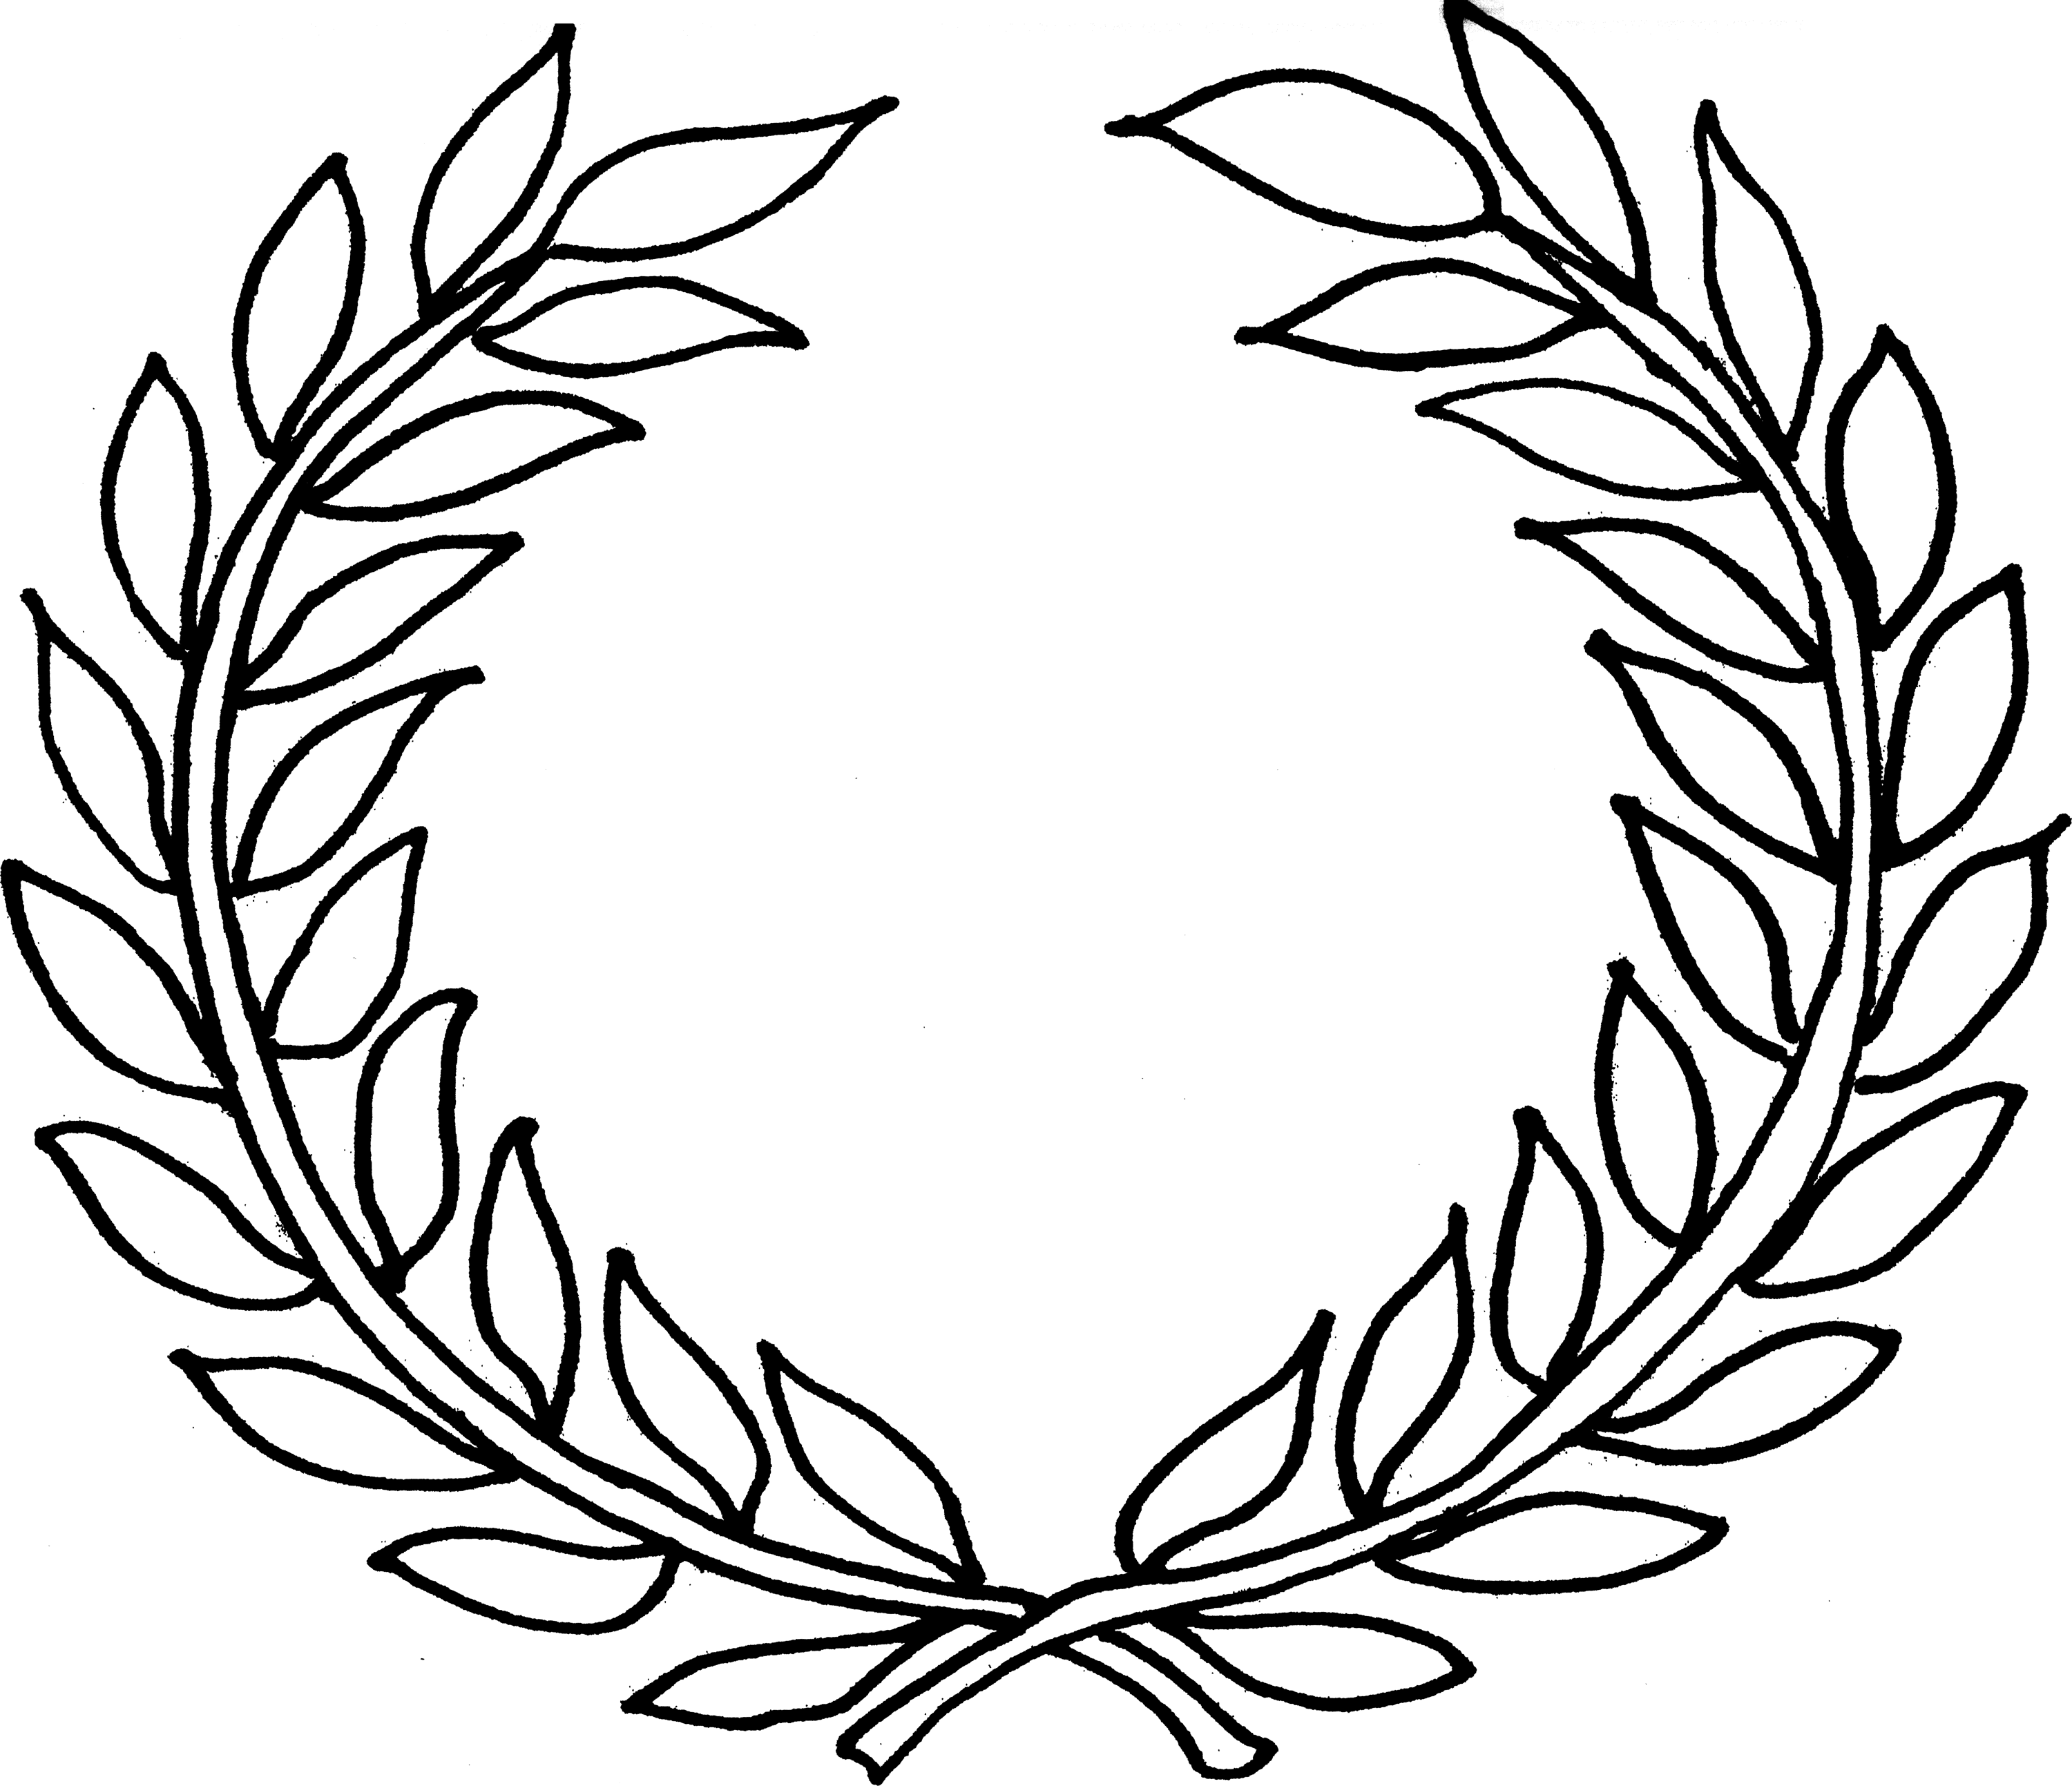 Free Wreath Black And White Clipart, Download Free Clip Art.